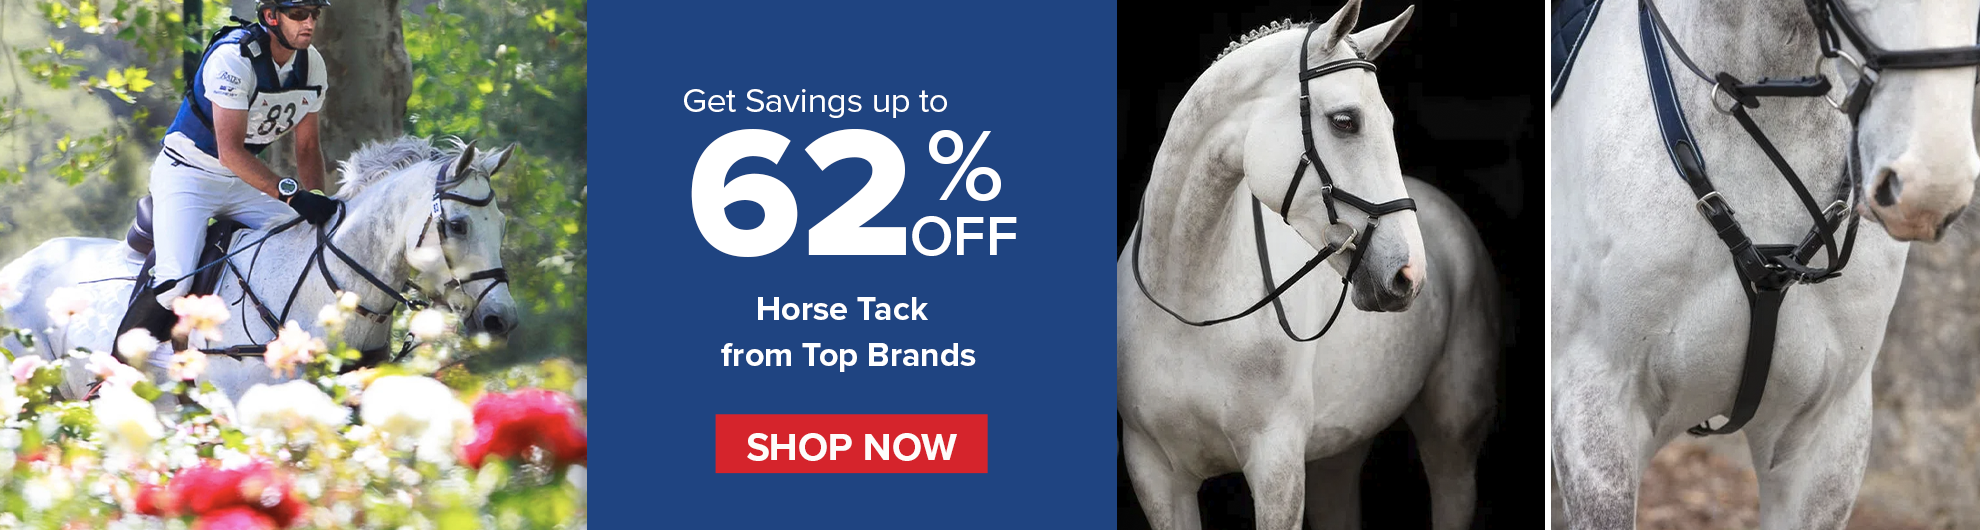 Horse Tack on Top Brands of Horse Tack